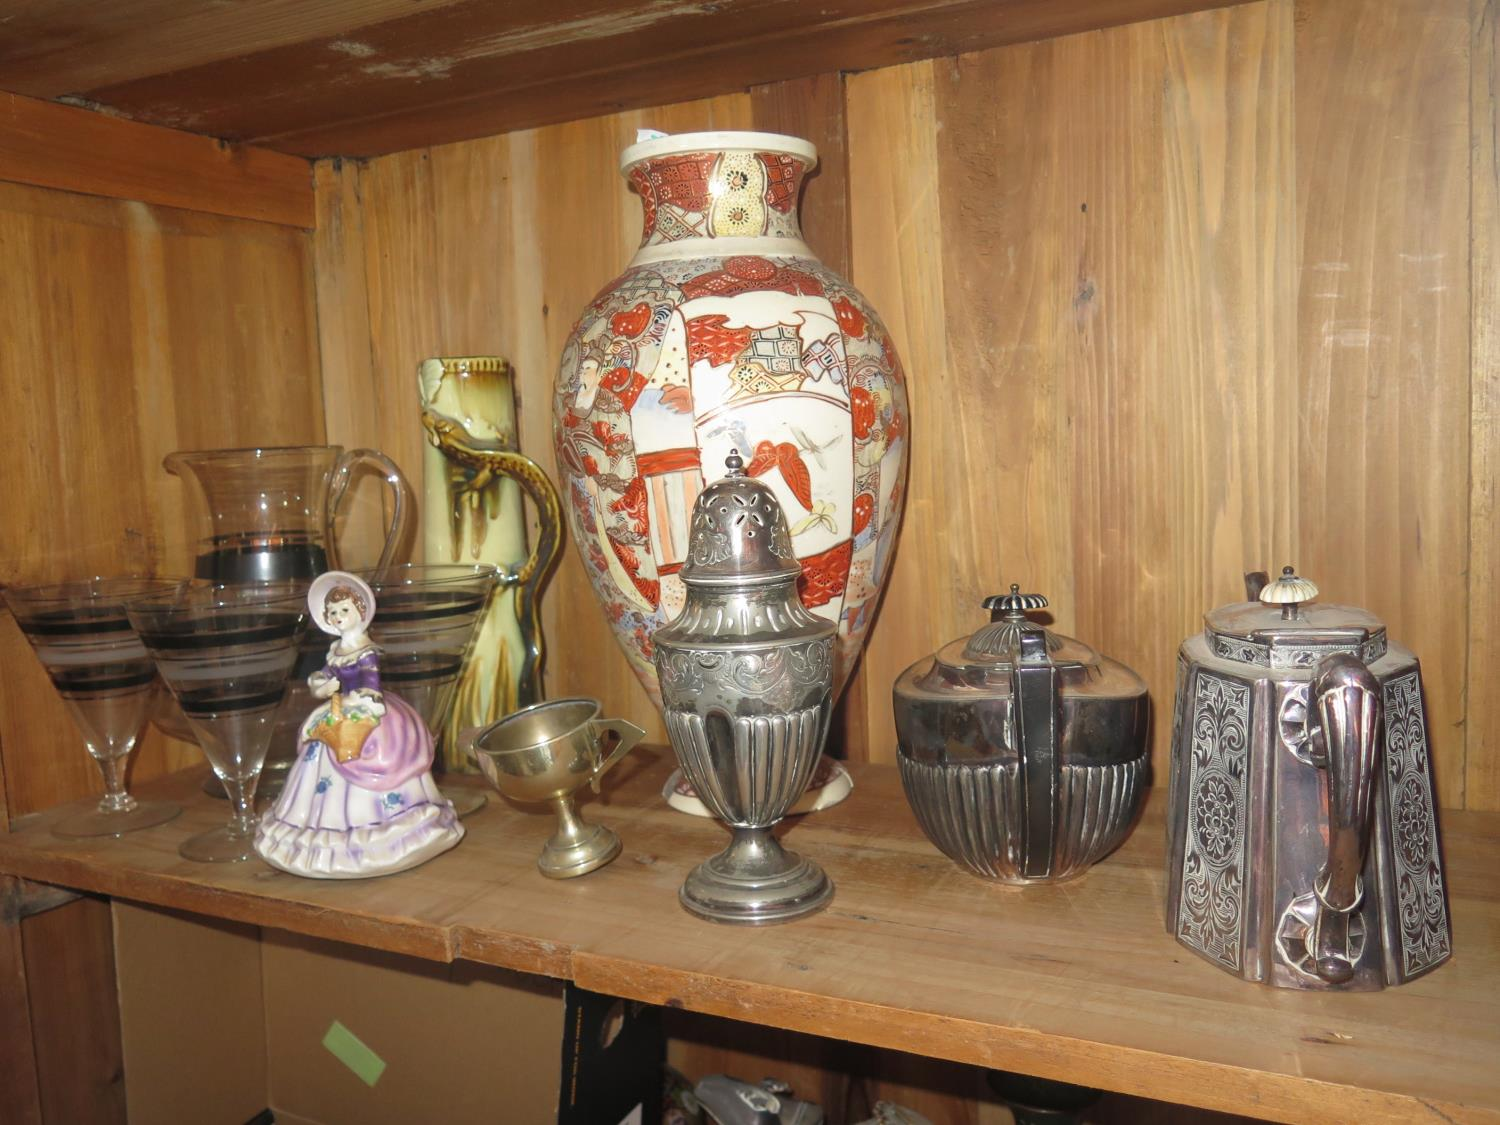 Lot 933 - A Selection of Oddments including Silver Plate, pewter, Art Deco jug and glass set, Crown Devon